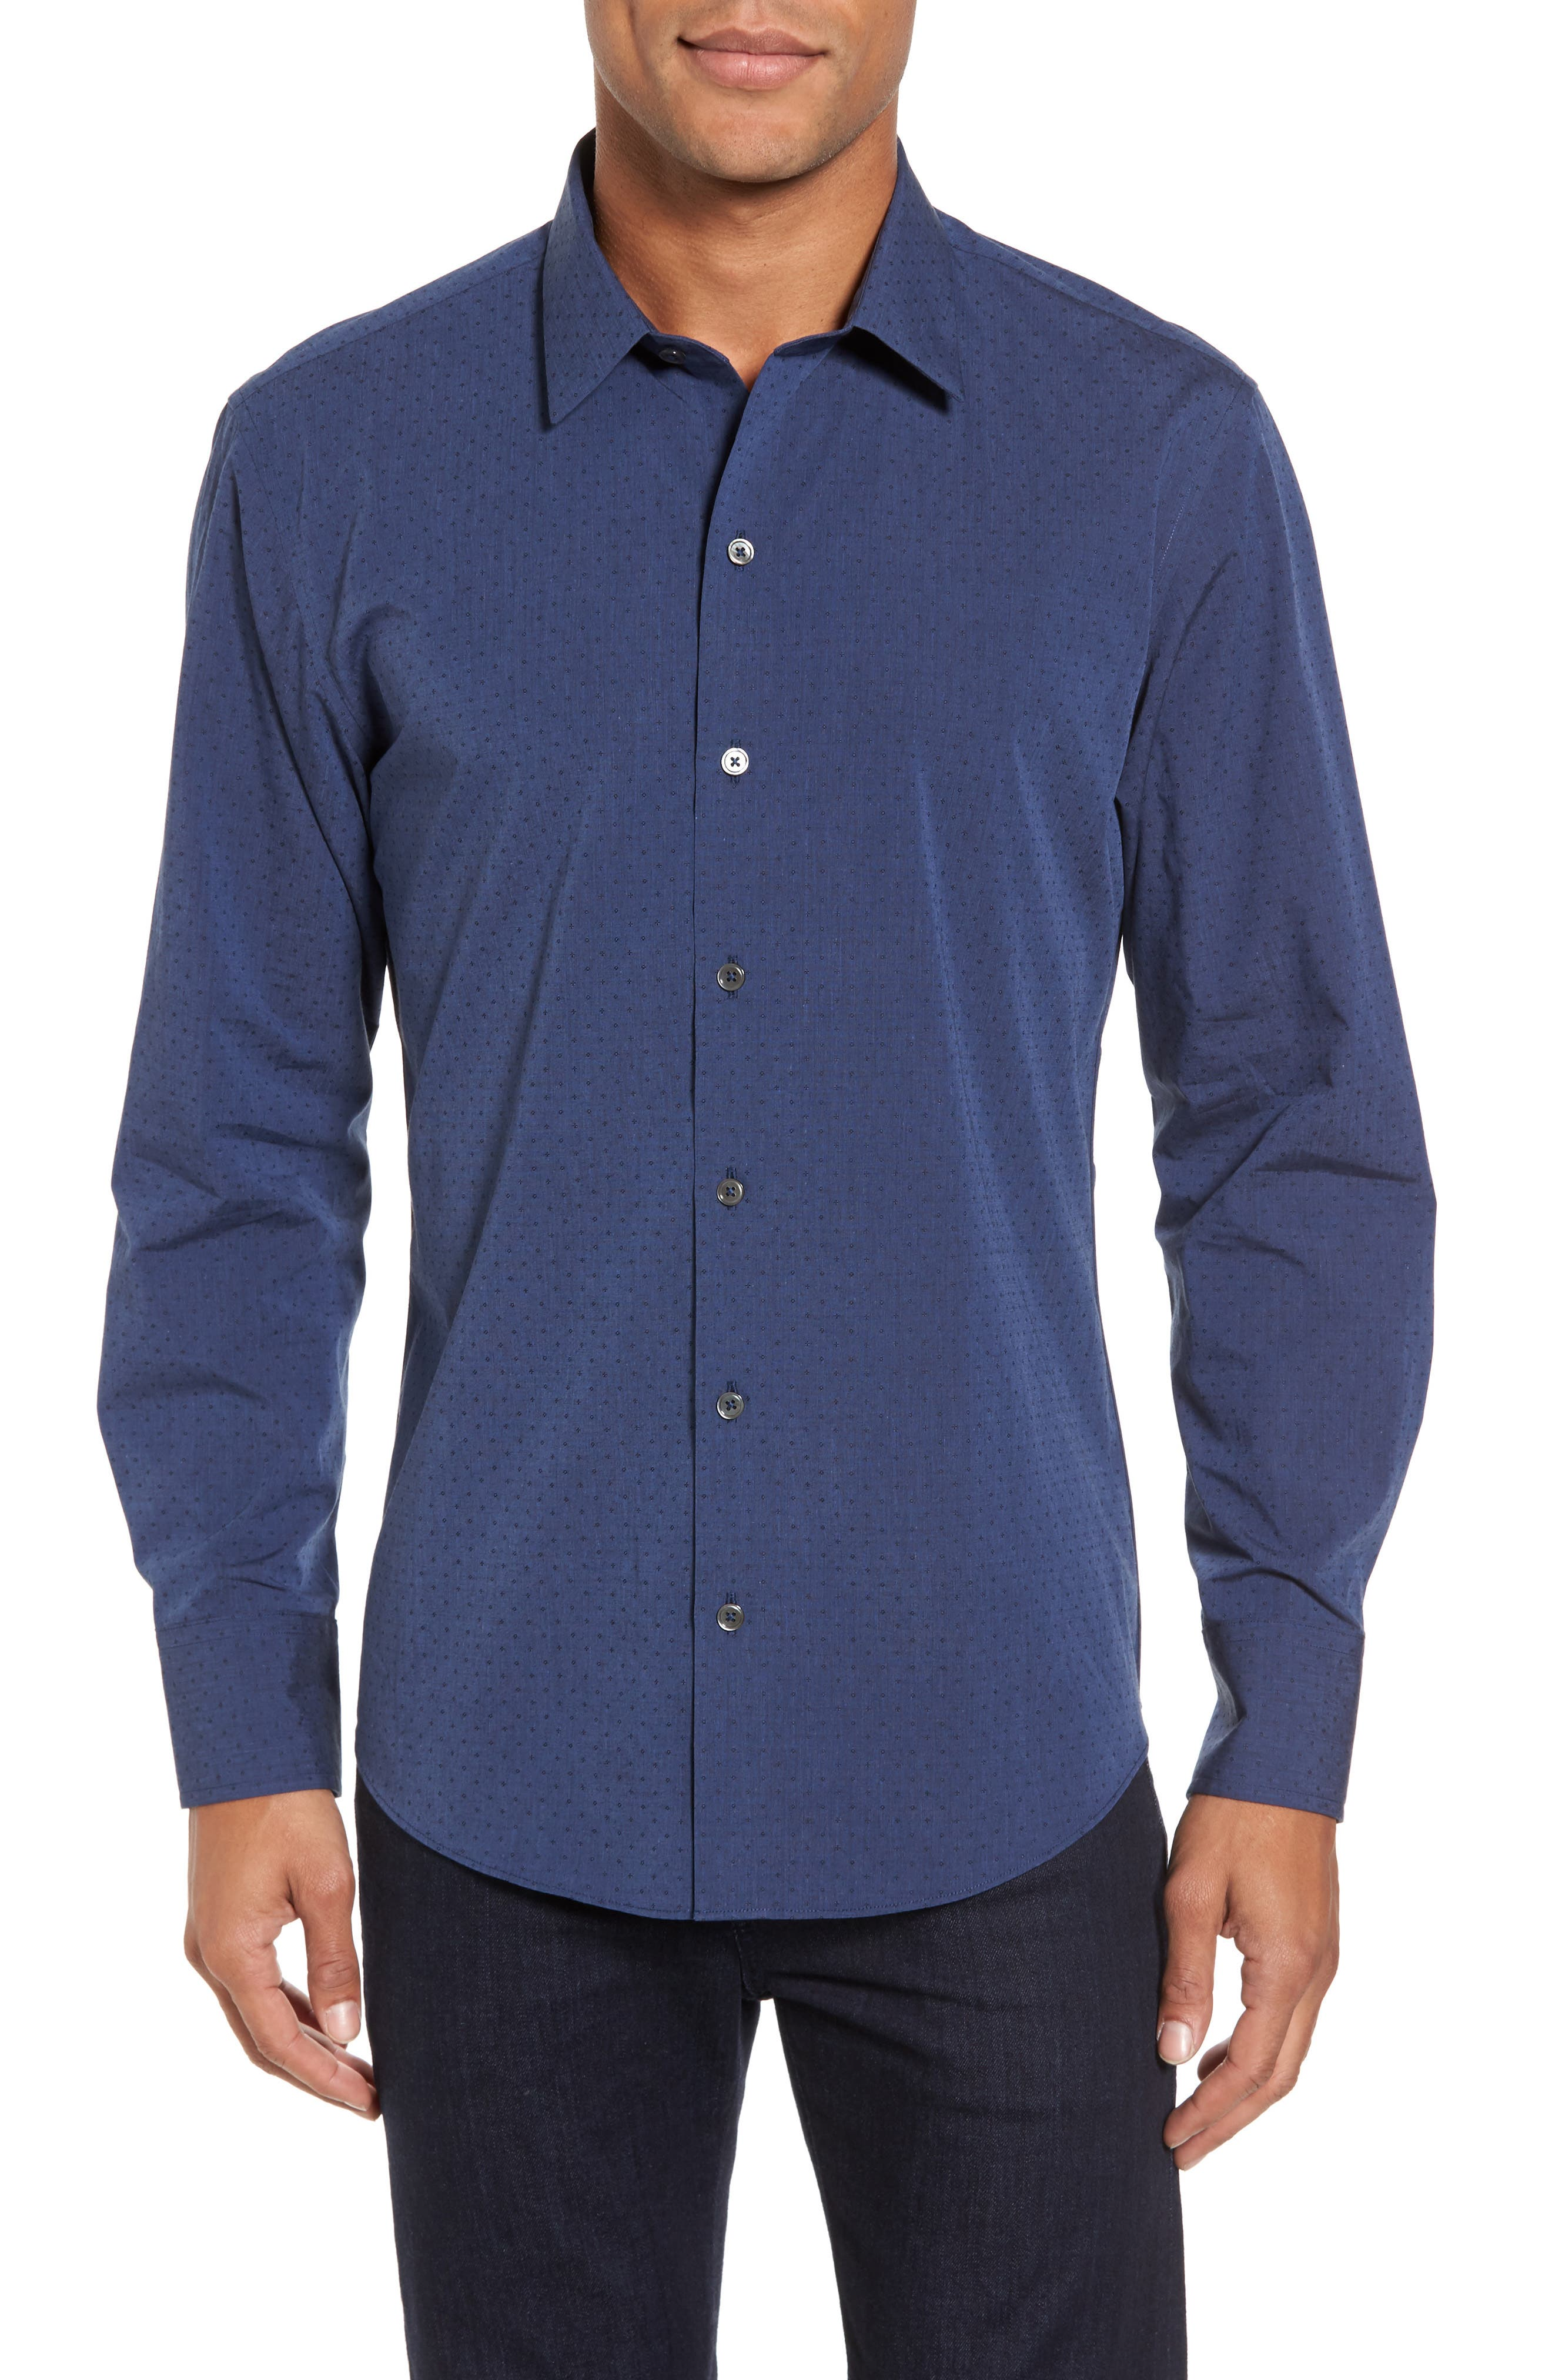 Colly Slim Fit Print Sport Shirt,                         Main,                         color,